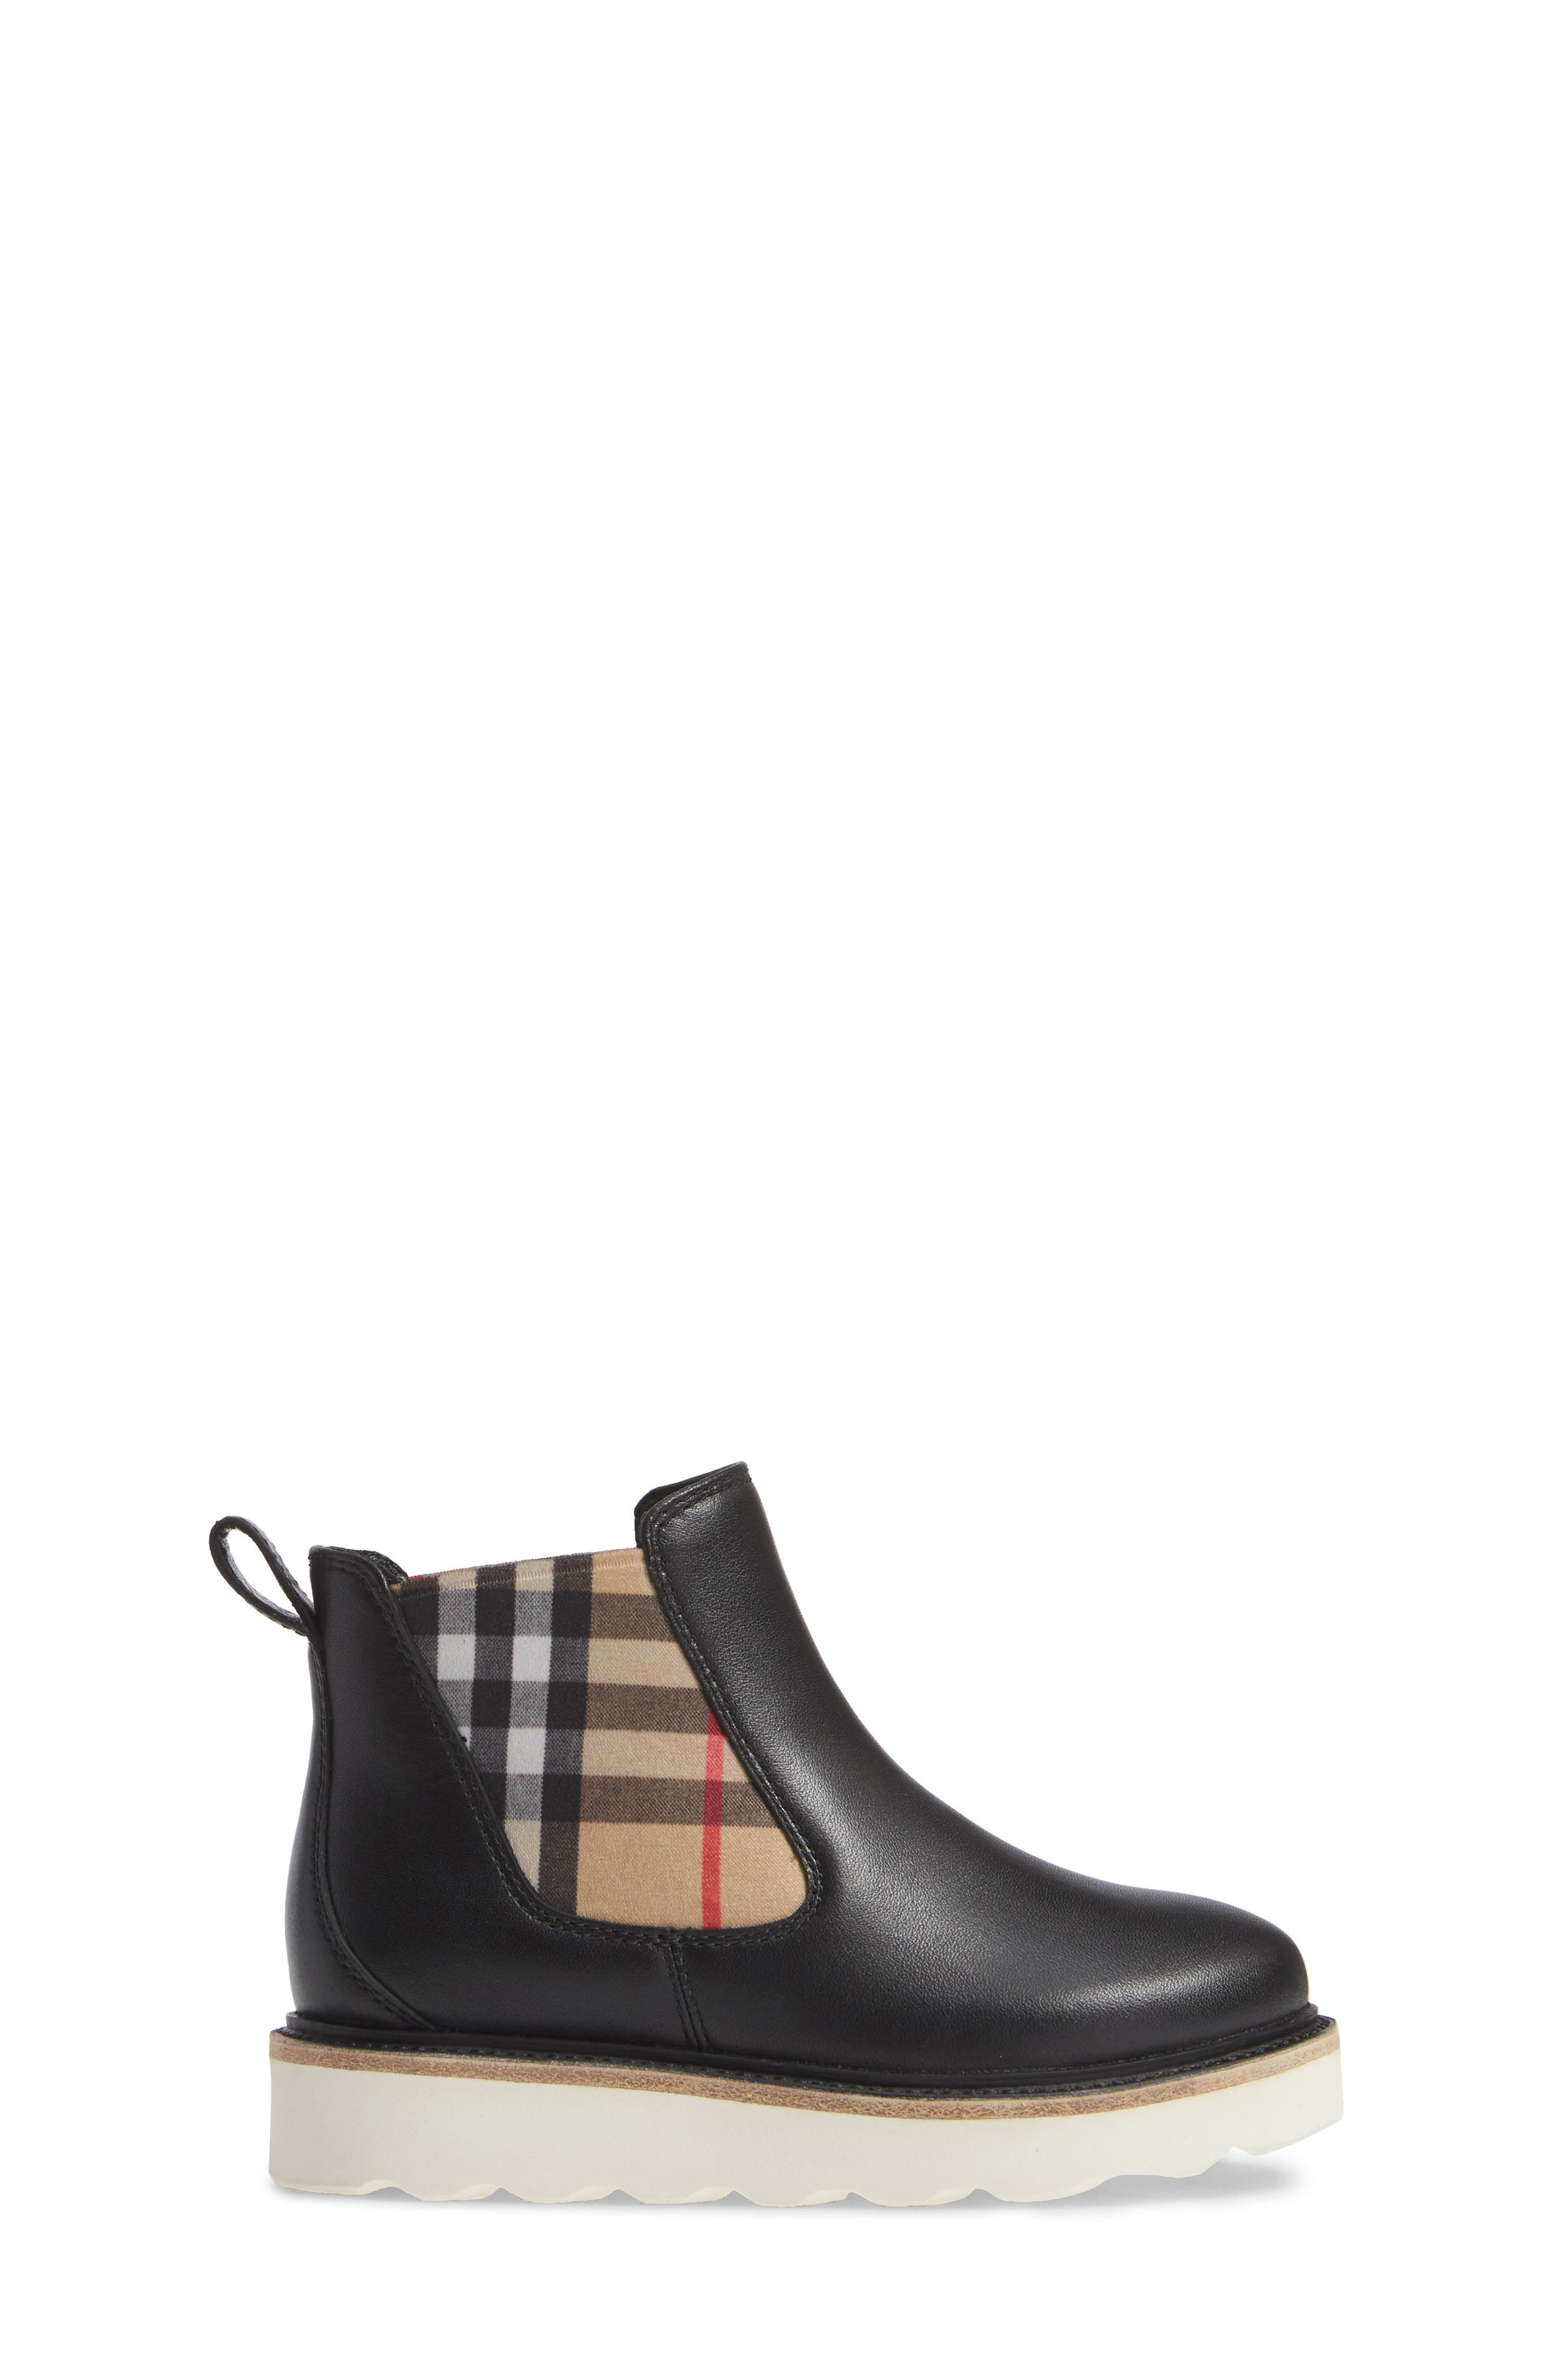 BURBERRY, Hayden Check Chelsea Bootie, Alternate thumbnail 3, color, BLACK